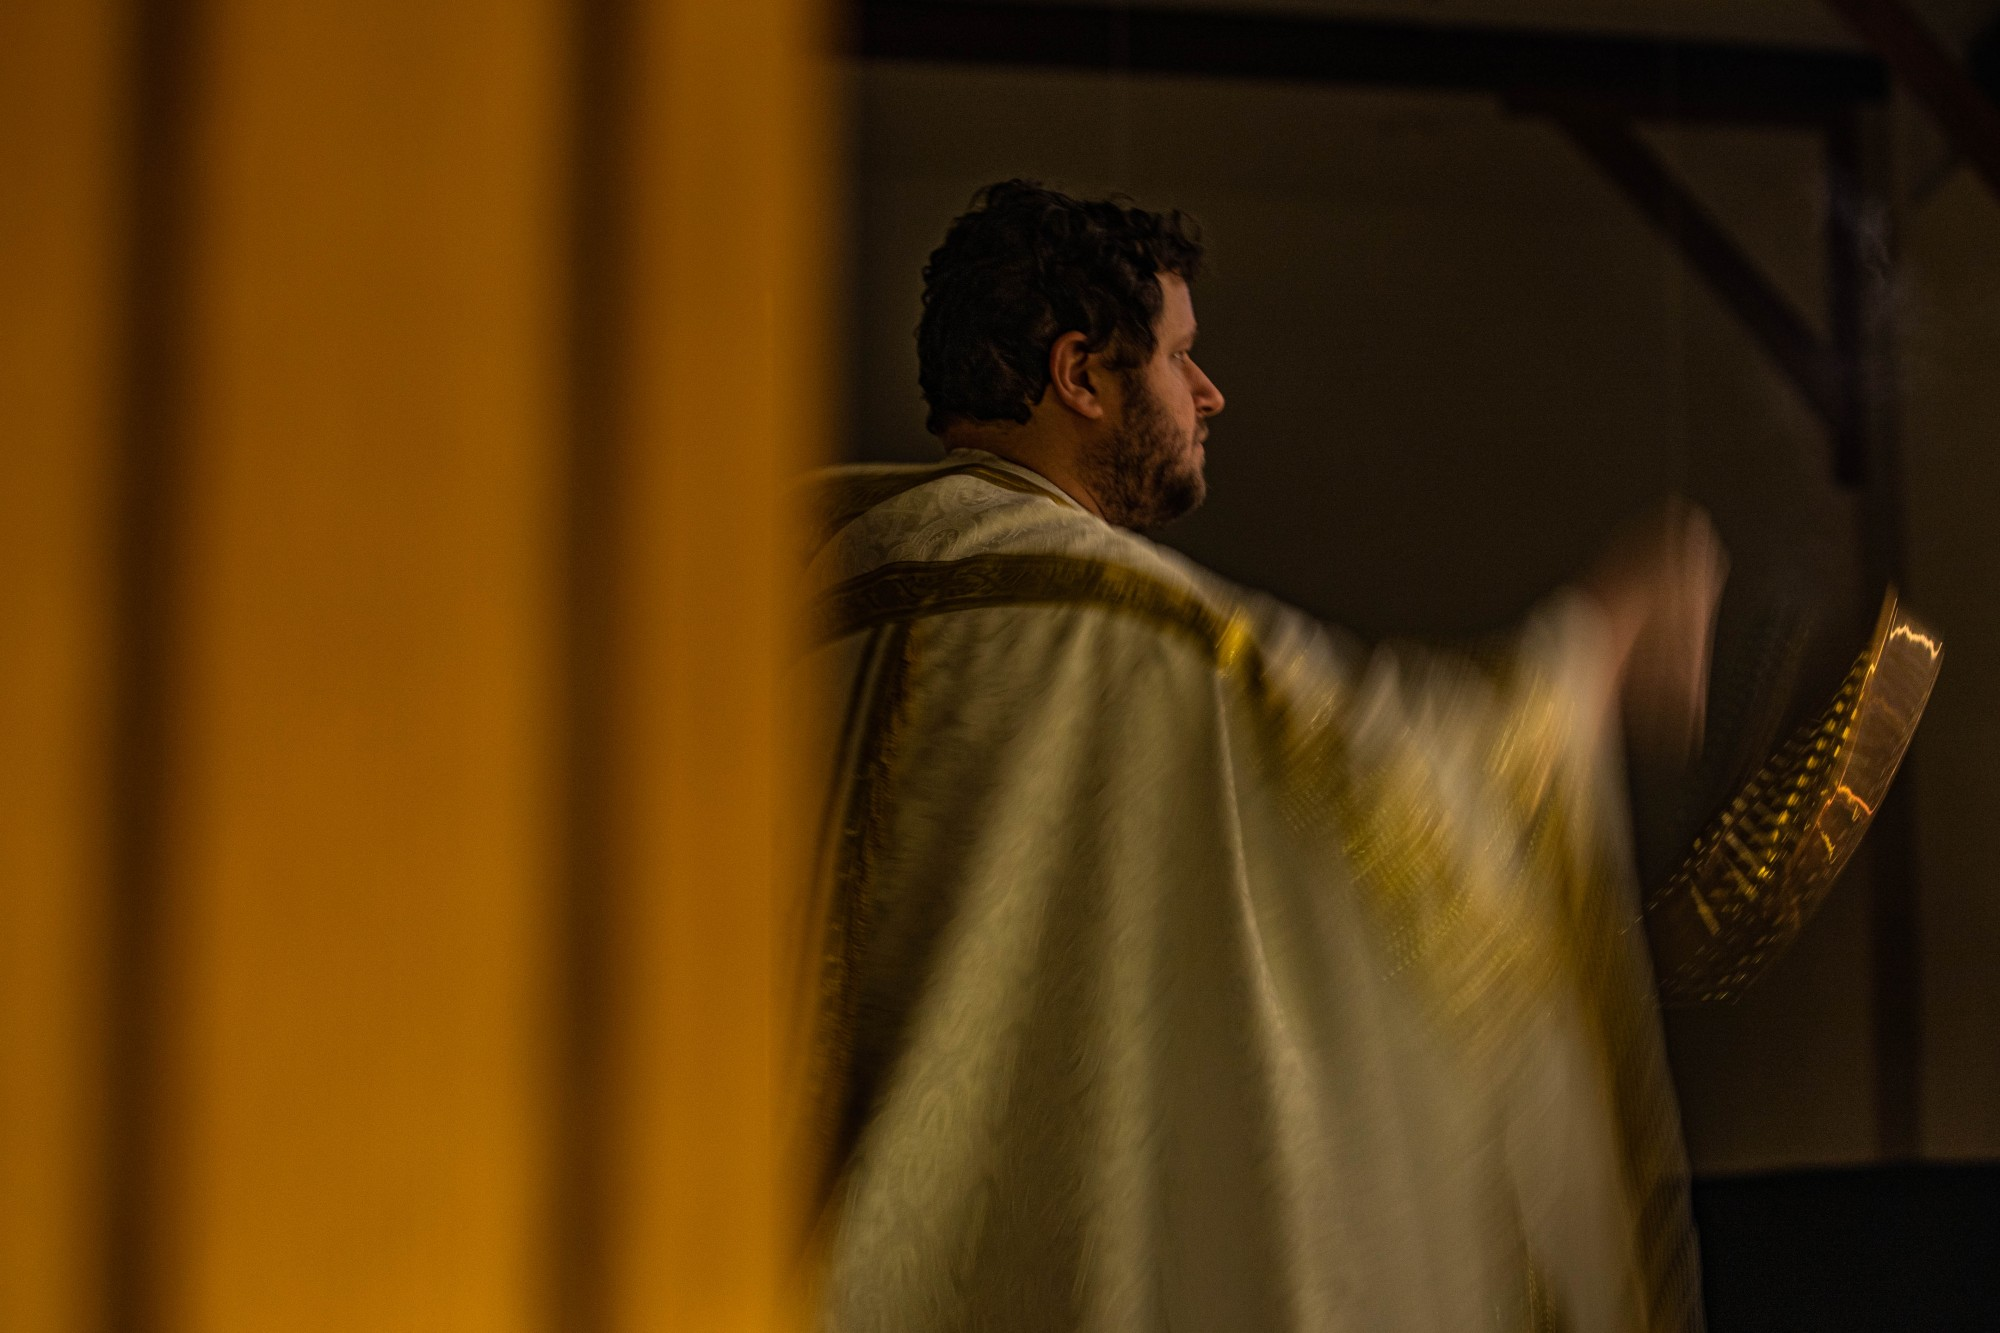 The Rev. Fr. Matthew Gossett burns incense during mass at the Christ the King University Parish Catholic Church in Athens, Ohio, on Wednesday, Sept. 16, 2020.